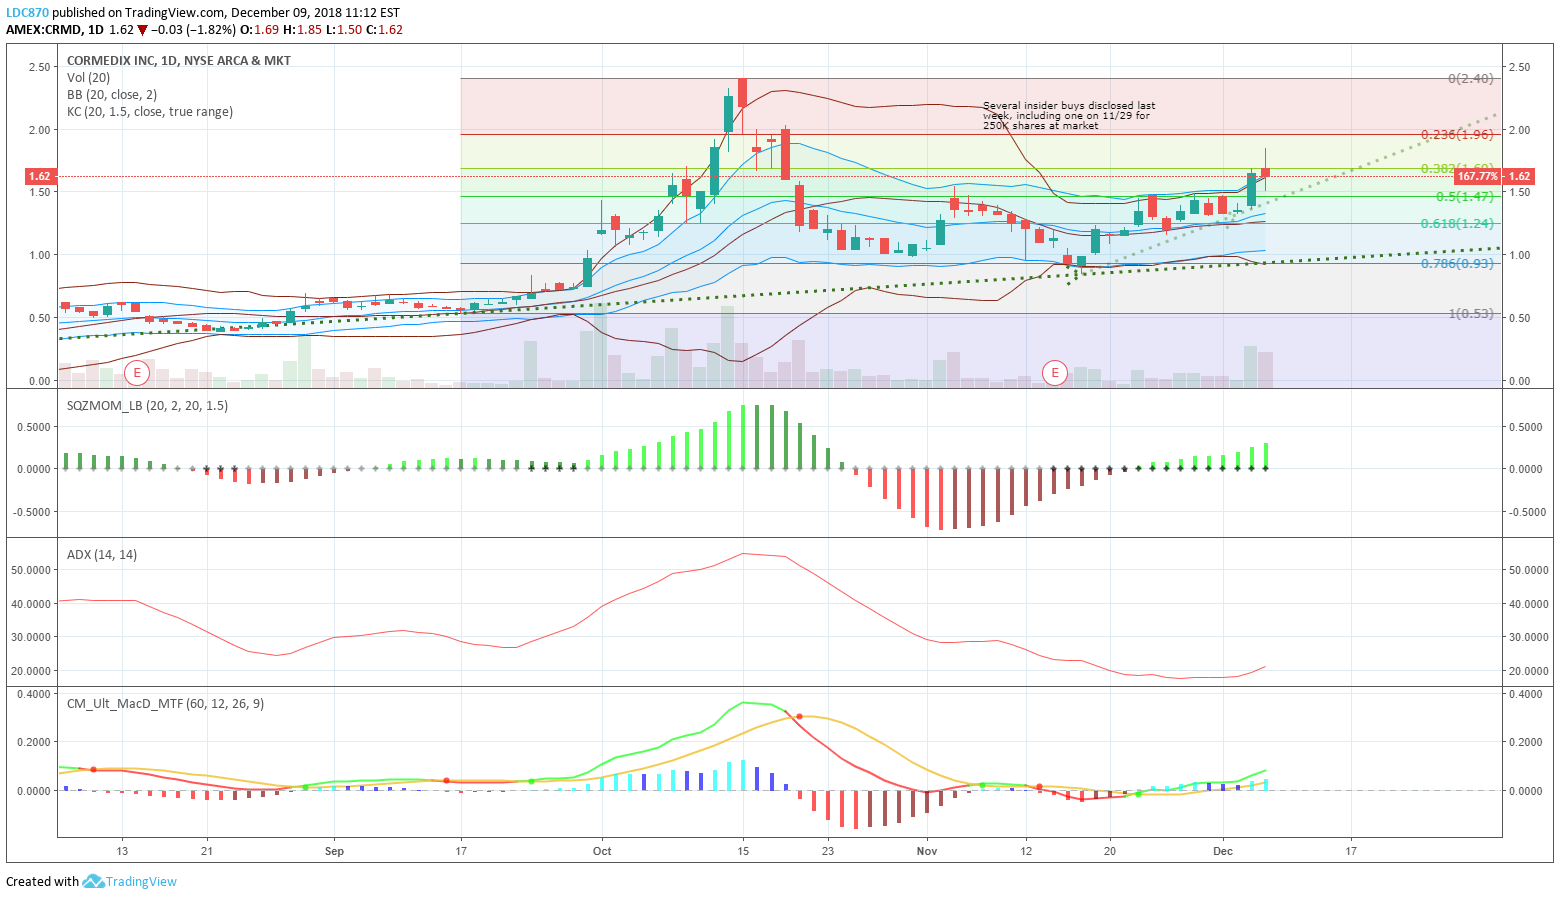 CRMD Setup for TTM Squeeze for AMEX:CRMD by LDC870 — TradingView